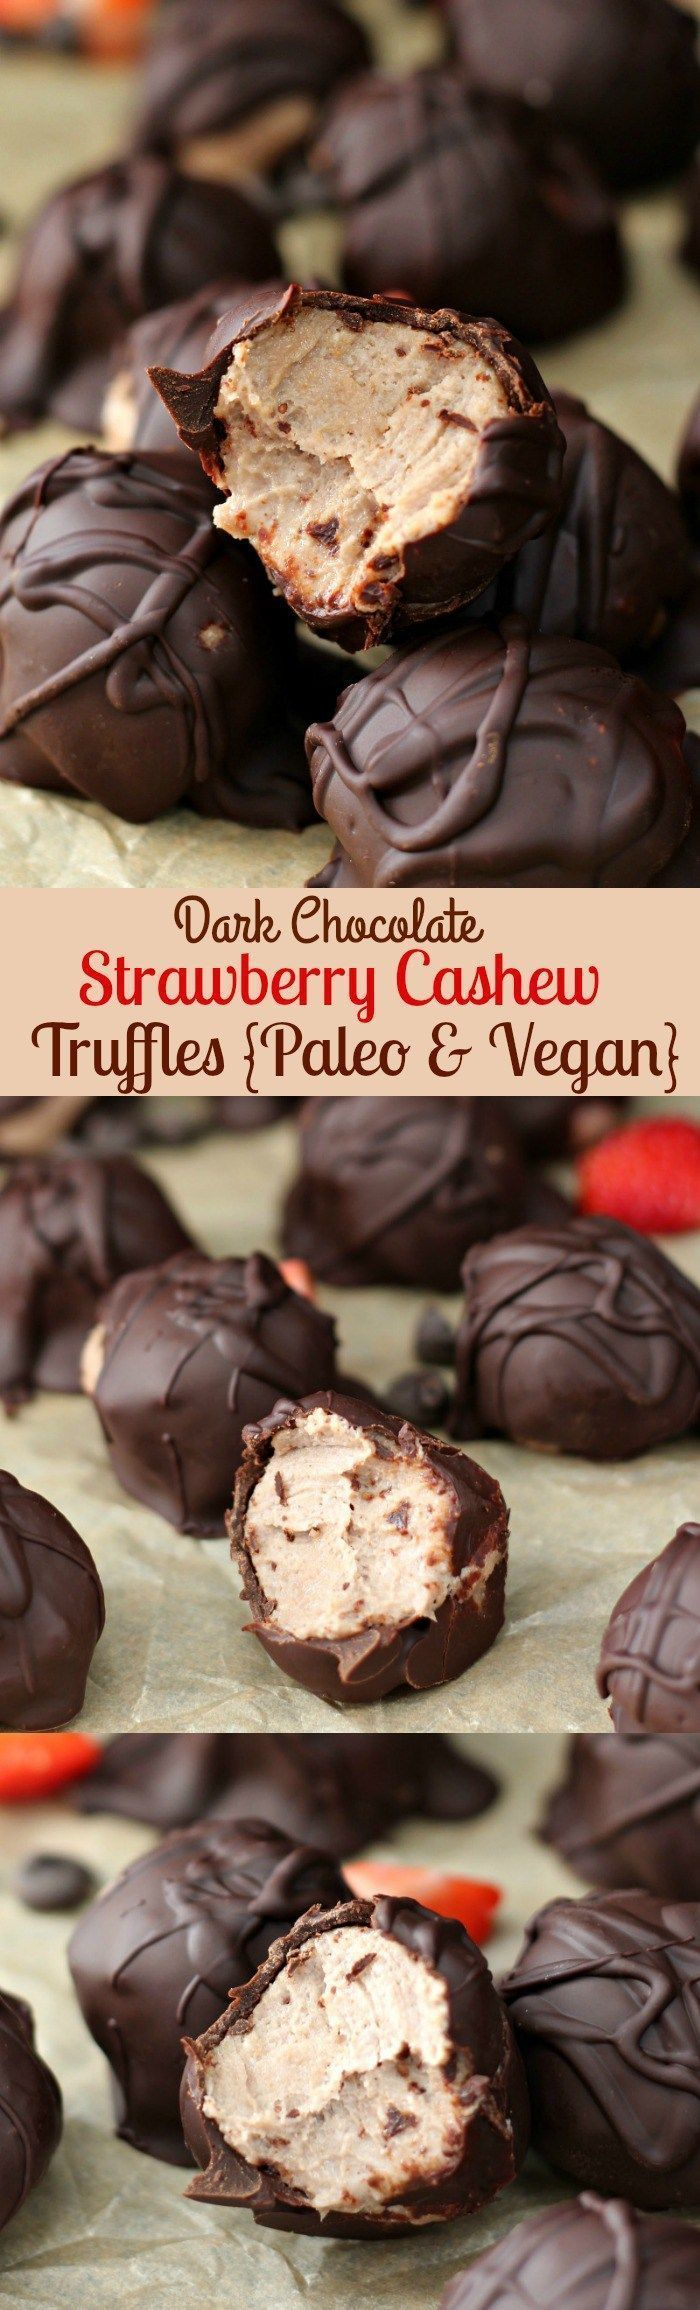 Dark Chocolate Dipped Strawberry Cashew Truffles {Paleo & Vegan} that are no bake, gluten free, healthy and decadent! Taste like they come from a box of chocolates!